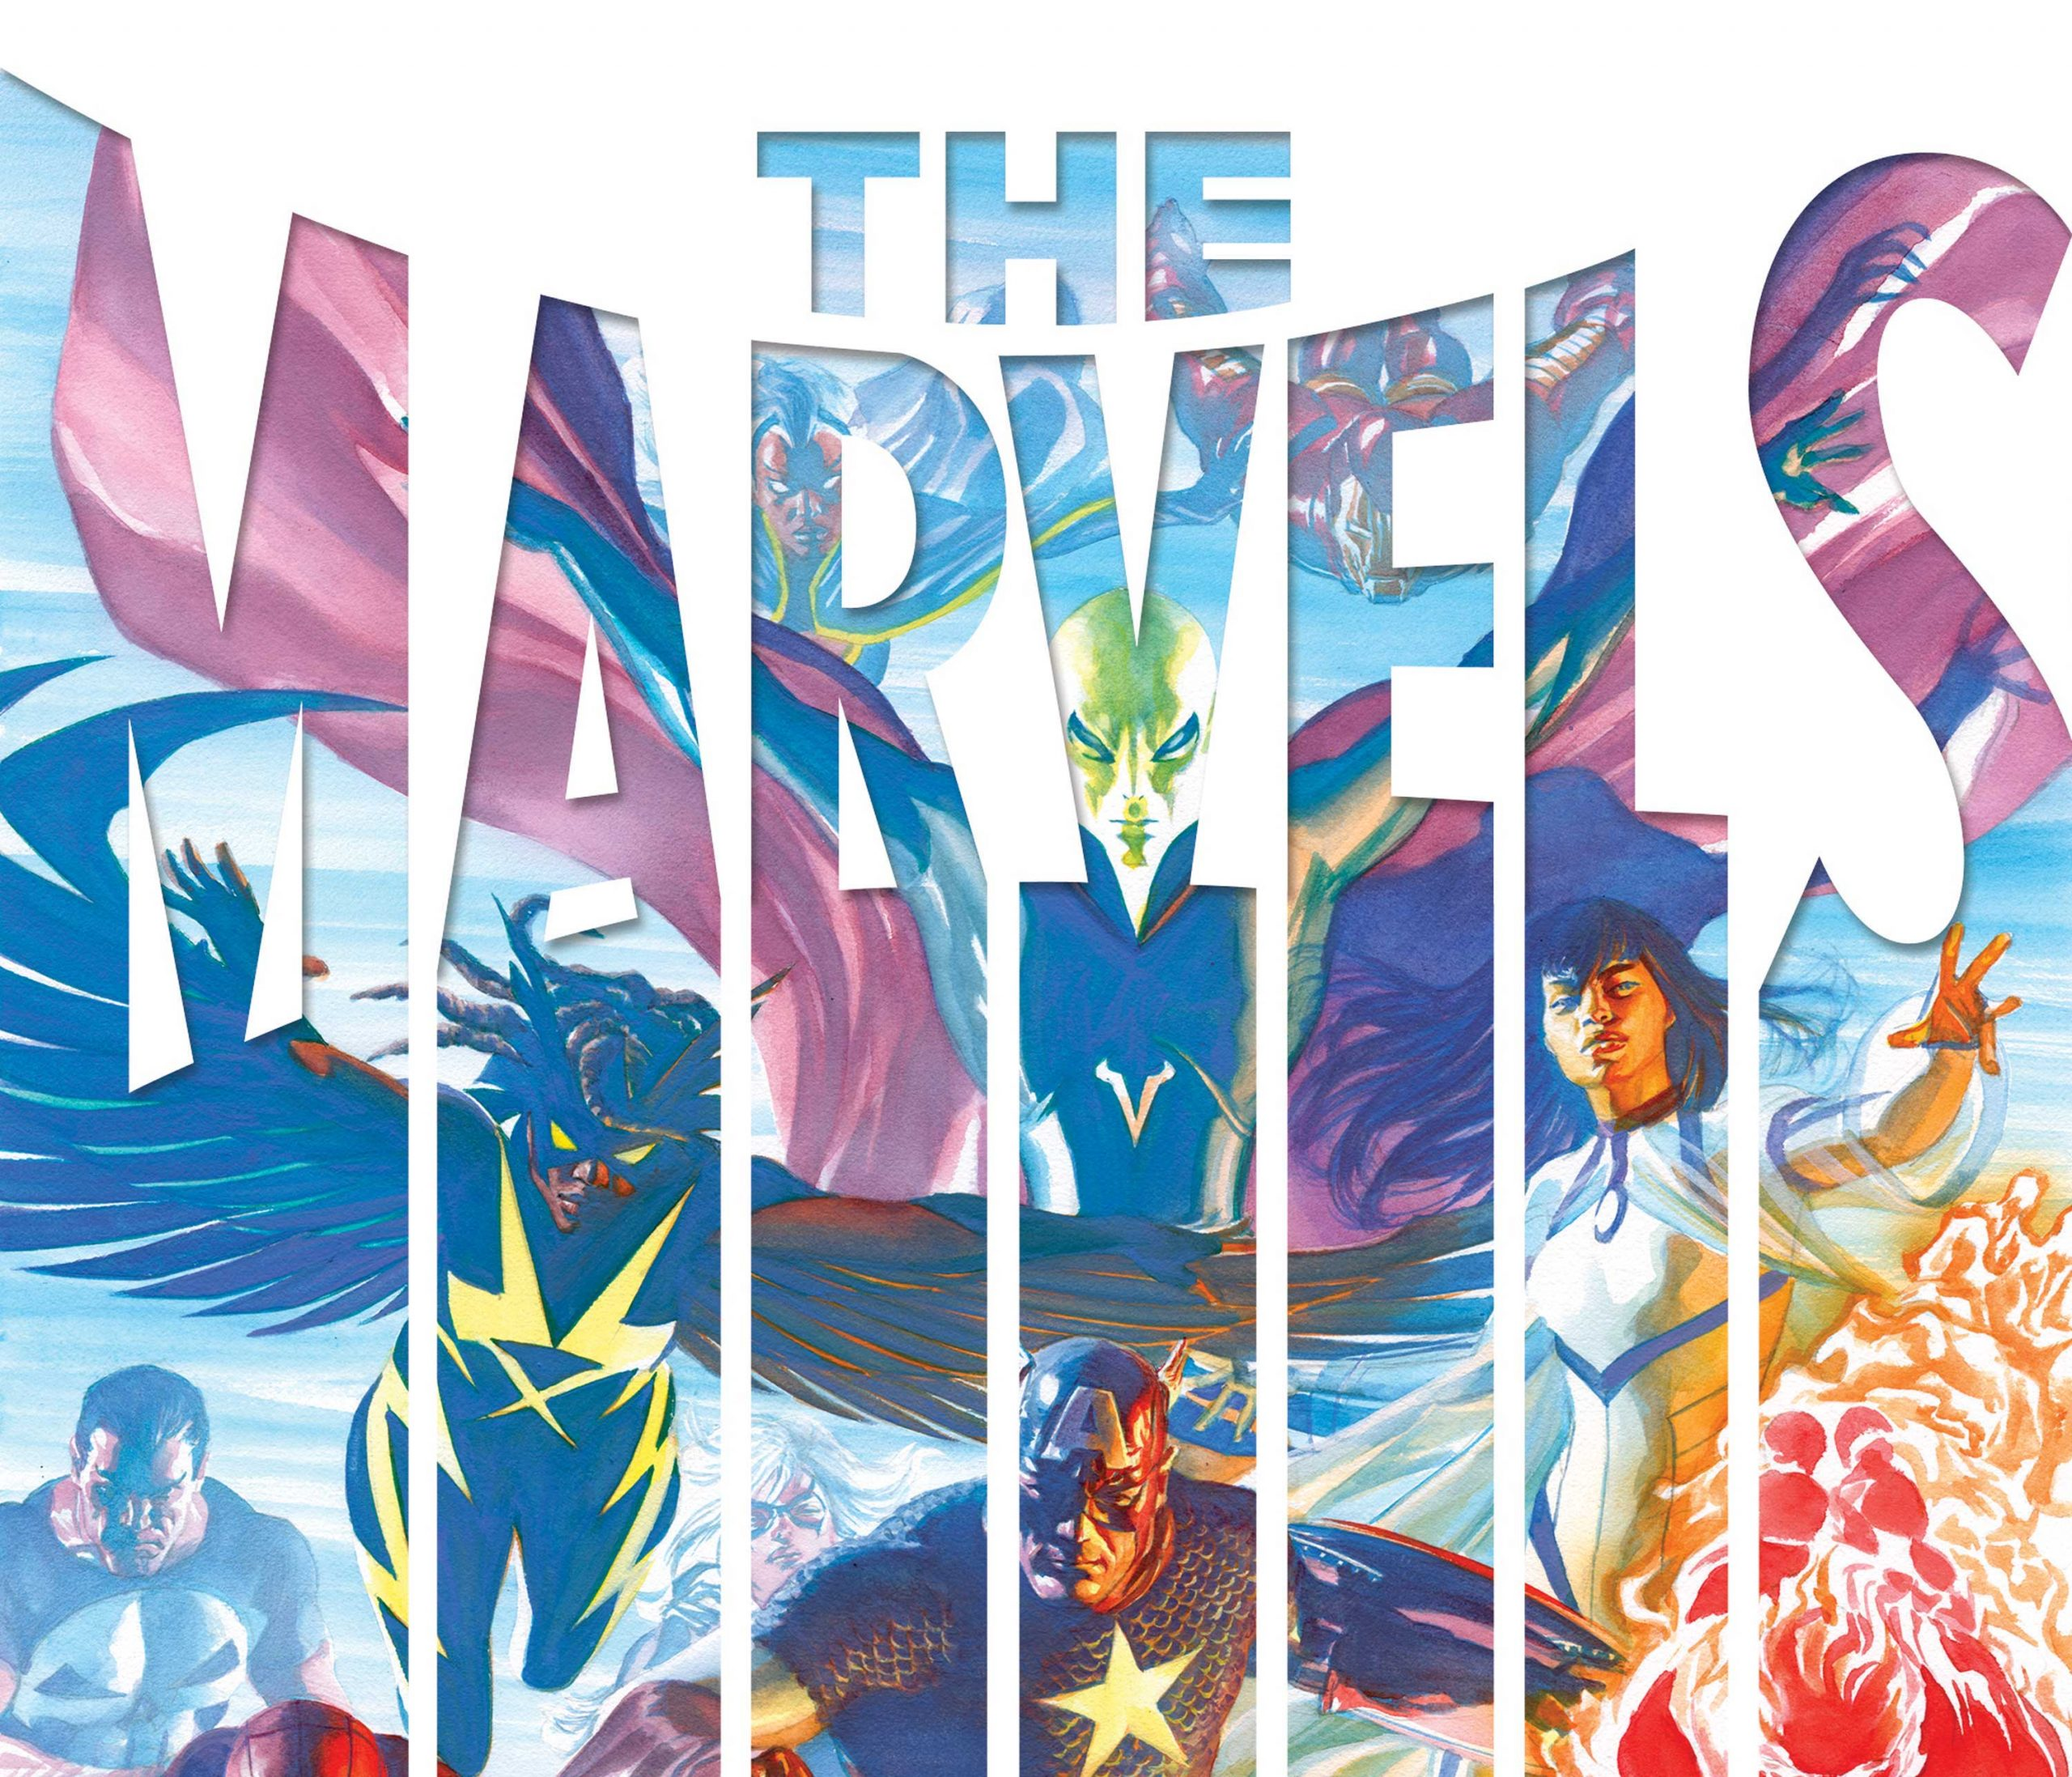 'The Marvels' #1 is ambitious and challenging